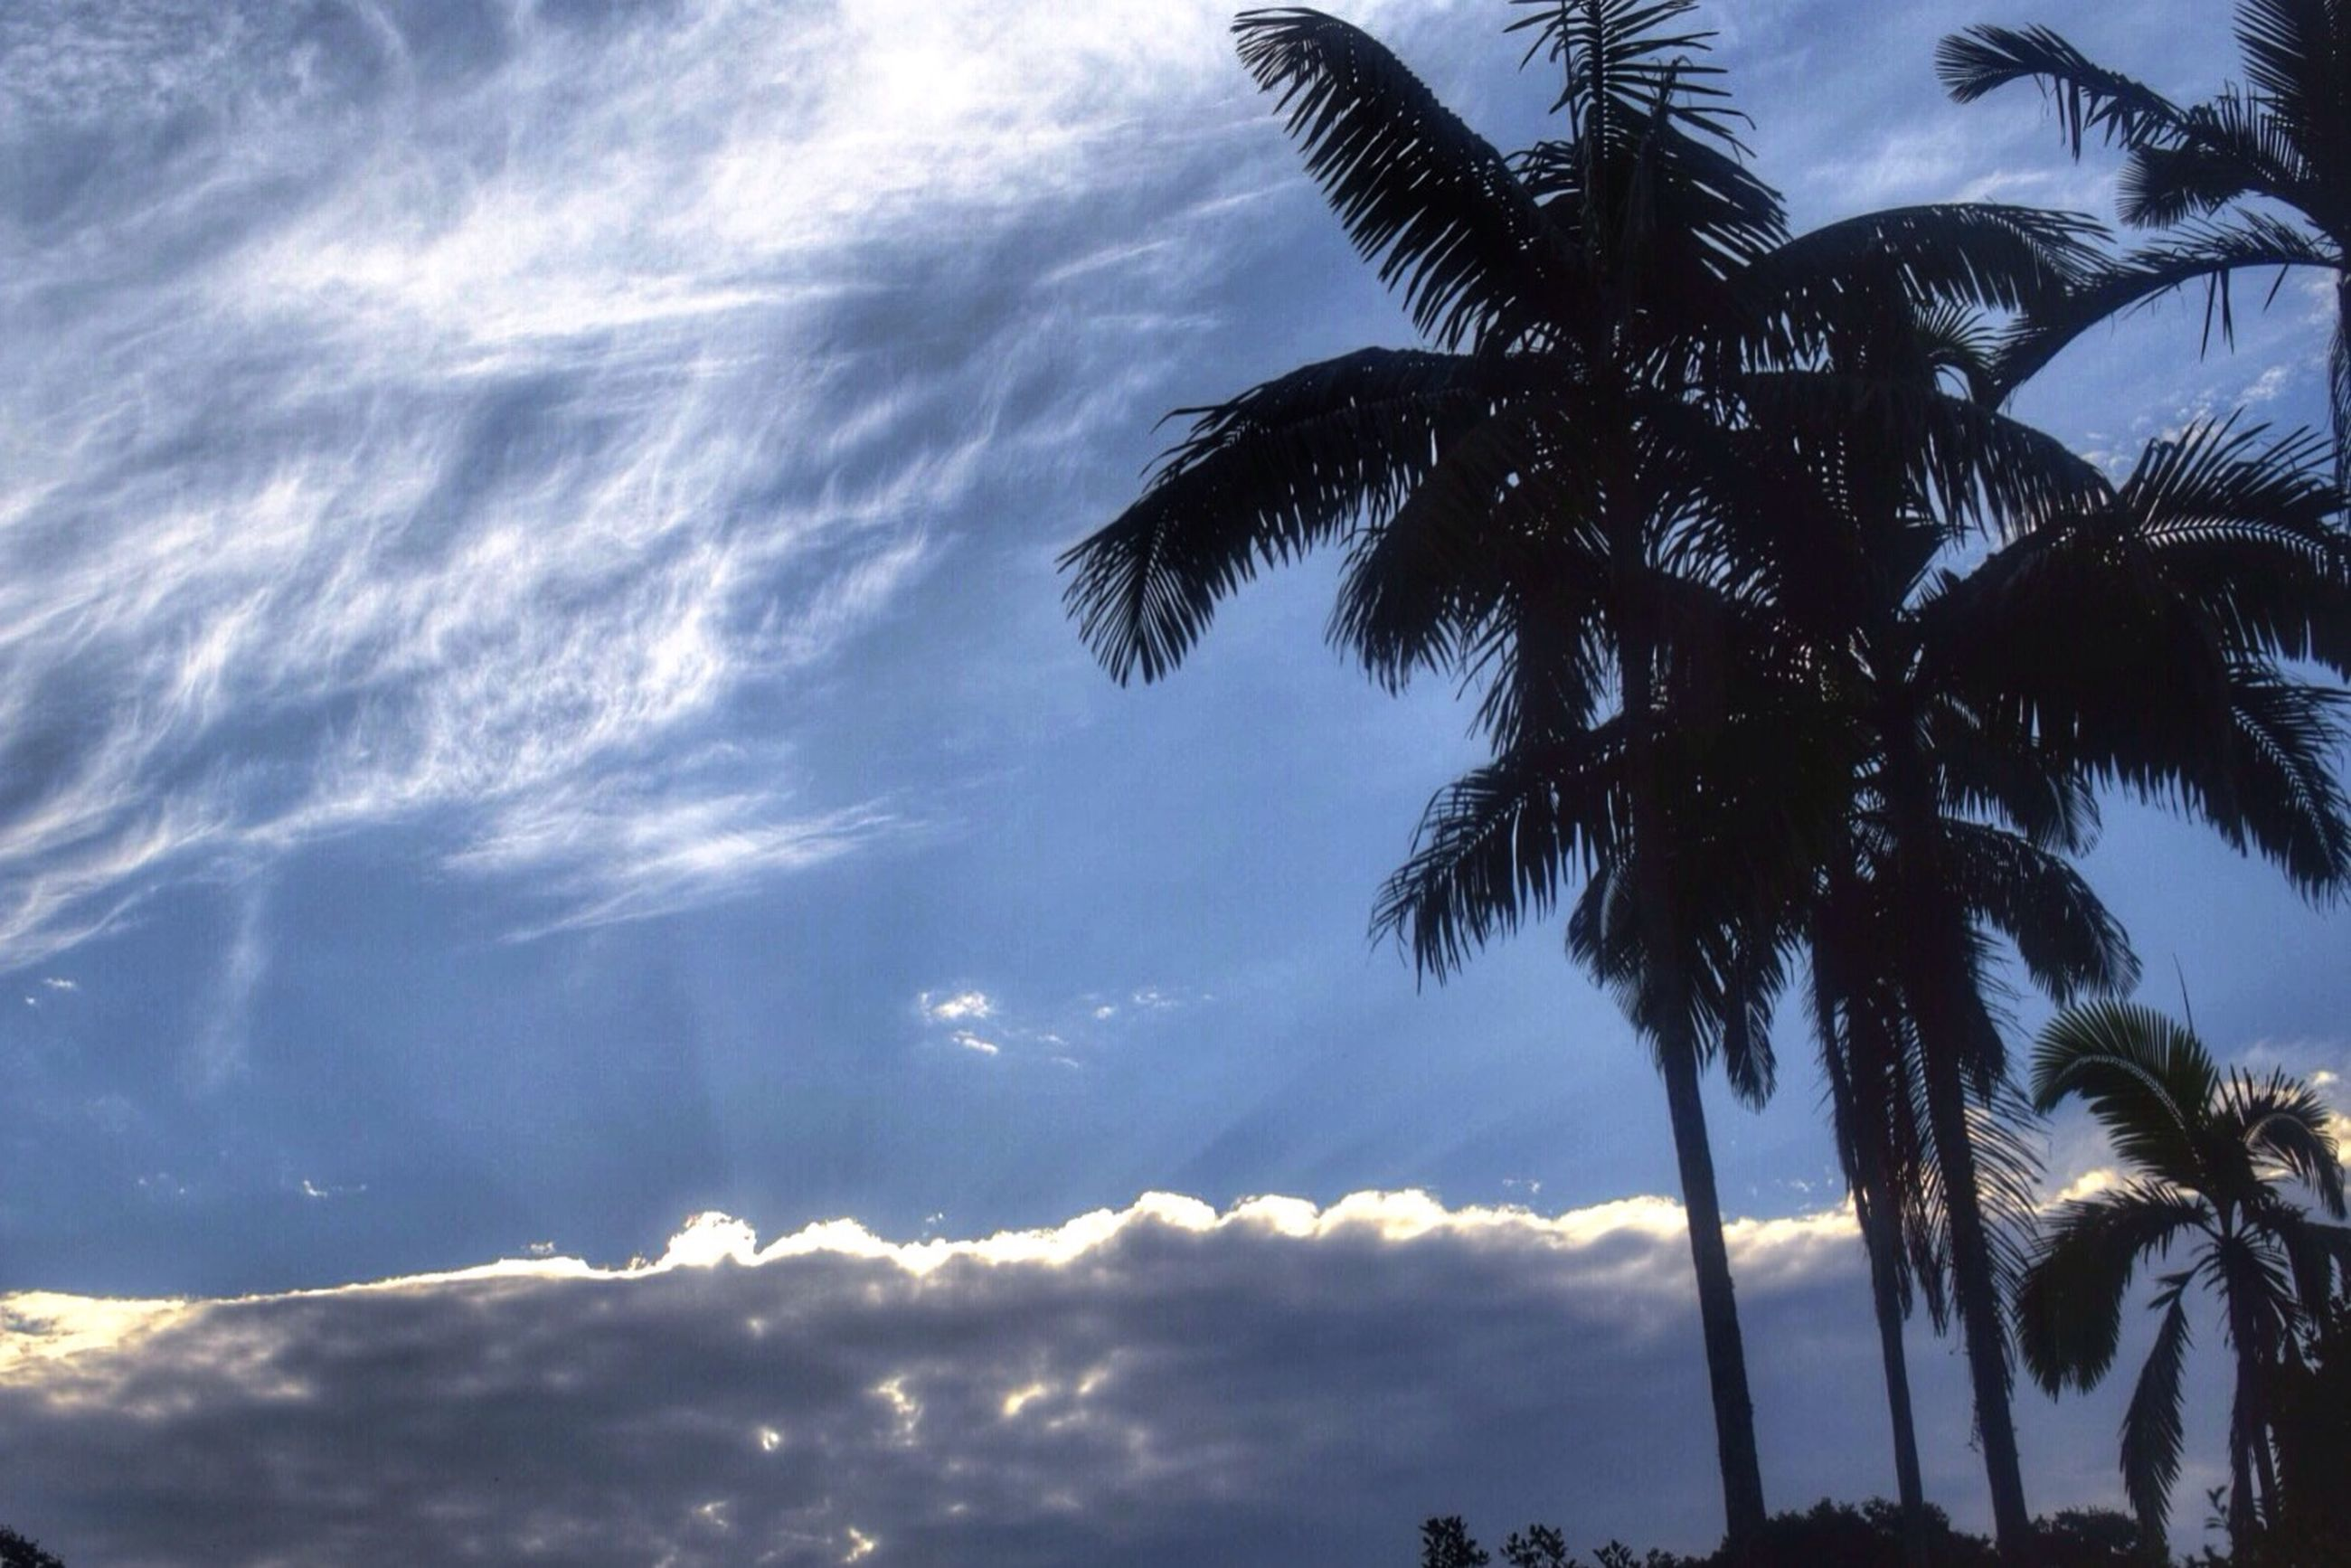 palm tree, low angle view, sky, tree, cloud - sky, tranquility, growth, beauty in nature, nature, scenics, cloudy, silhouette, tranquil scene, cloud, tree trunk, palm leaf, branch, outdoors, no people, coconut palm tree